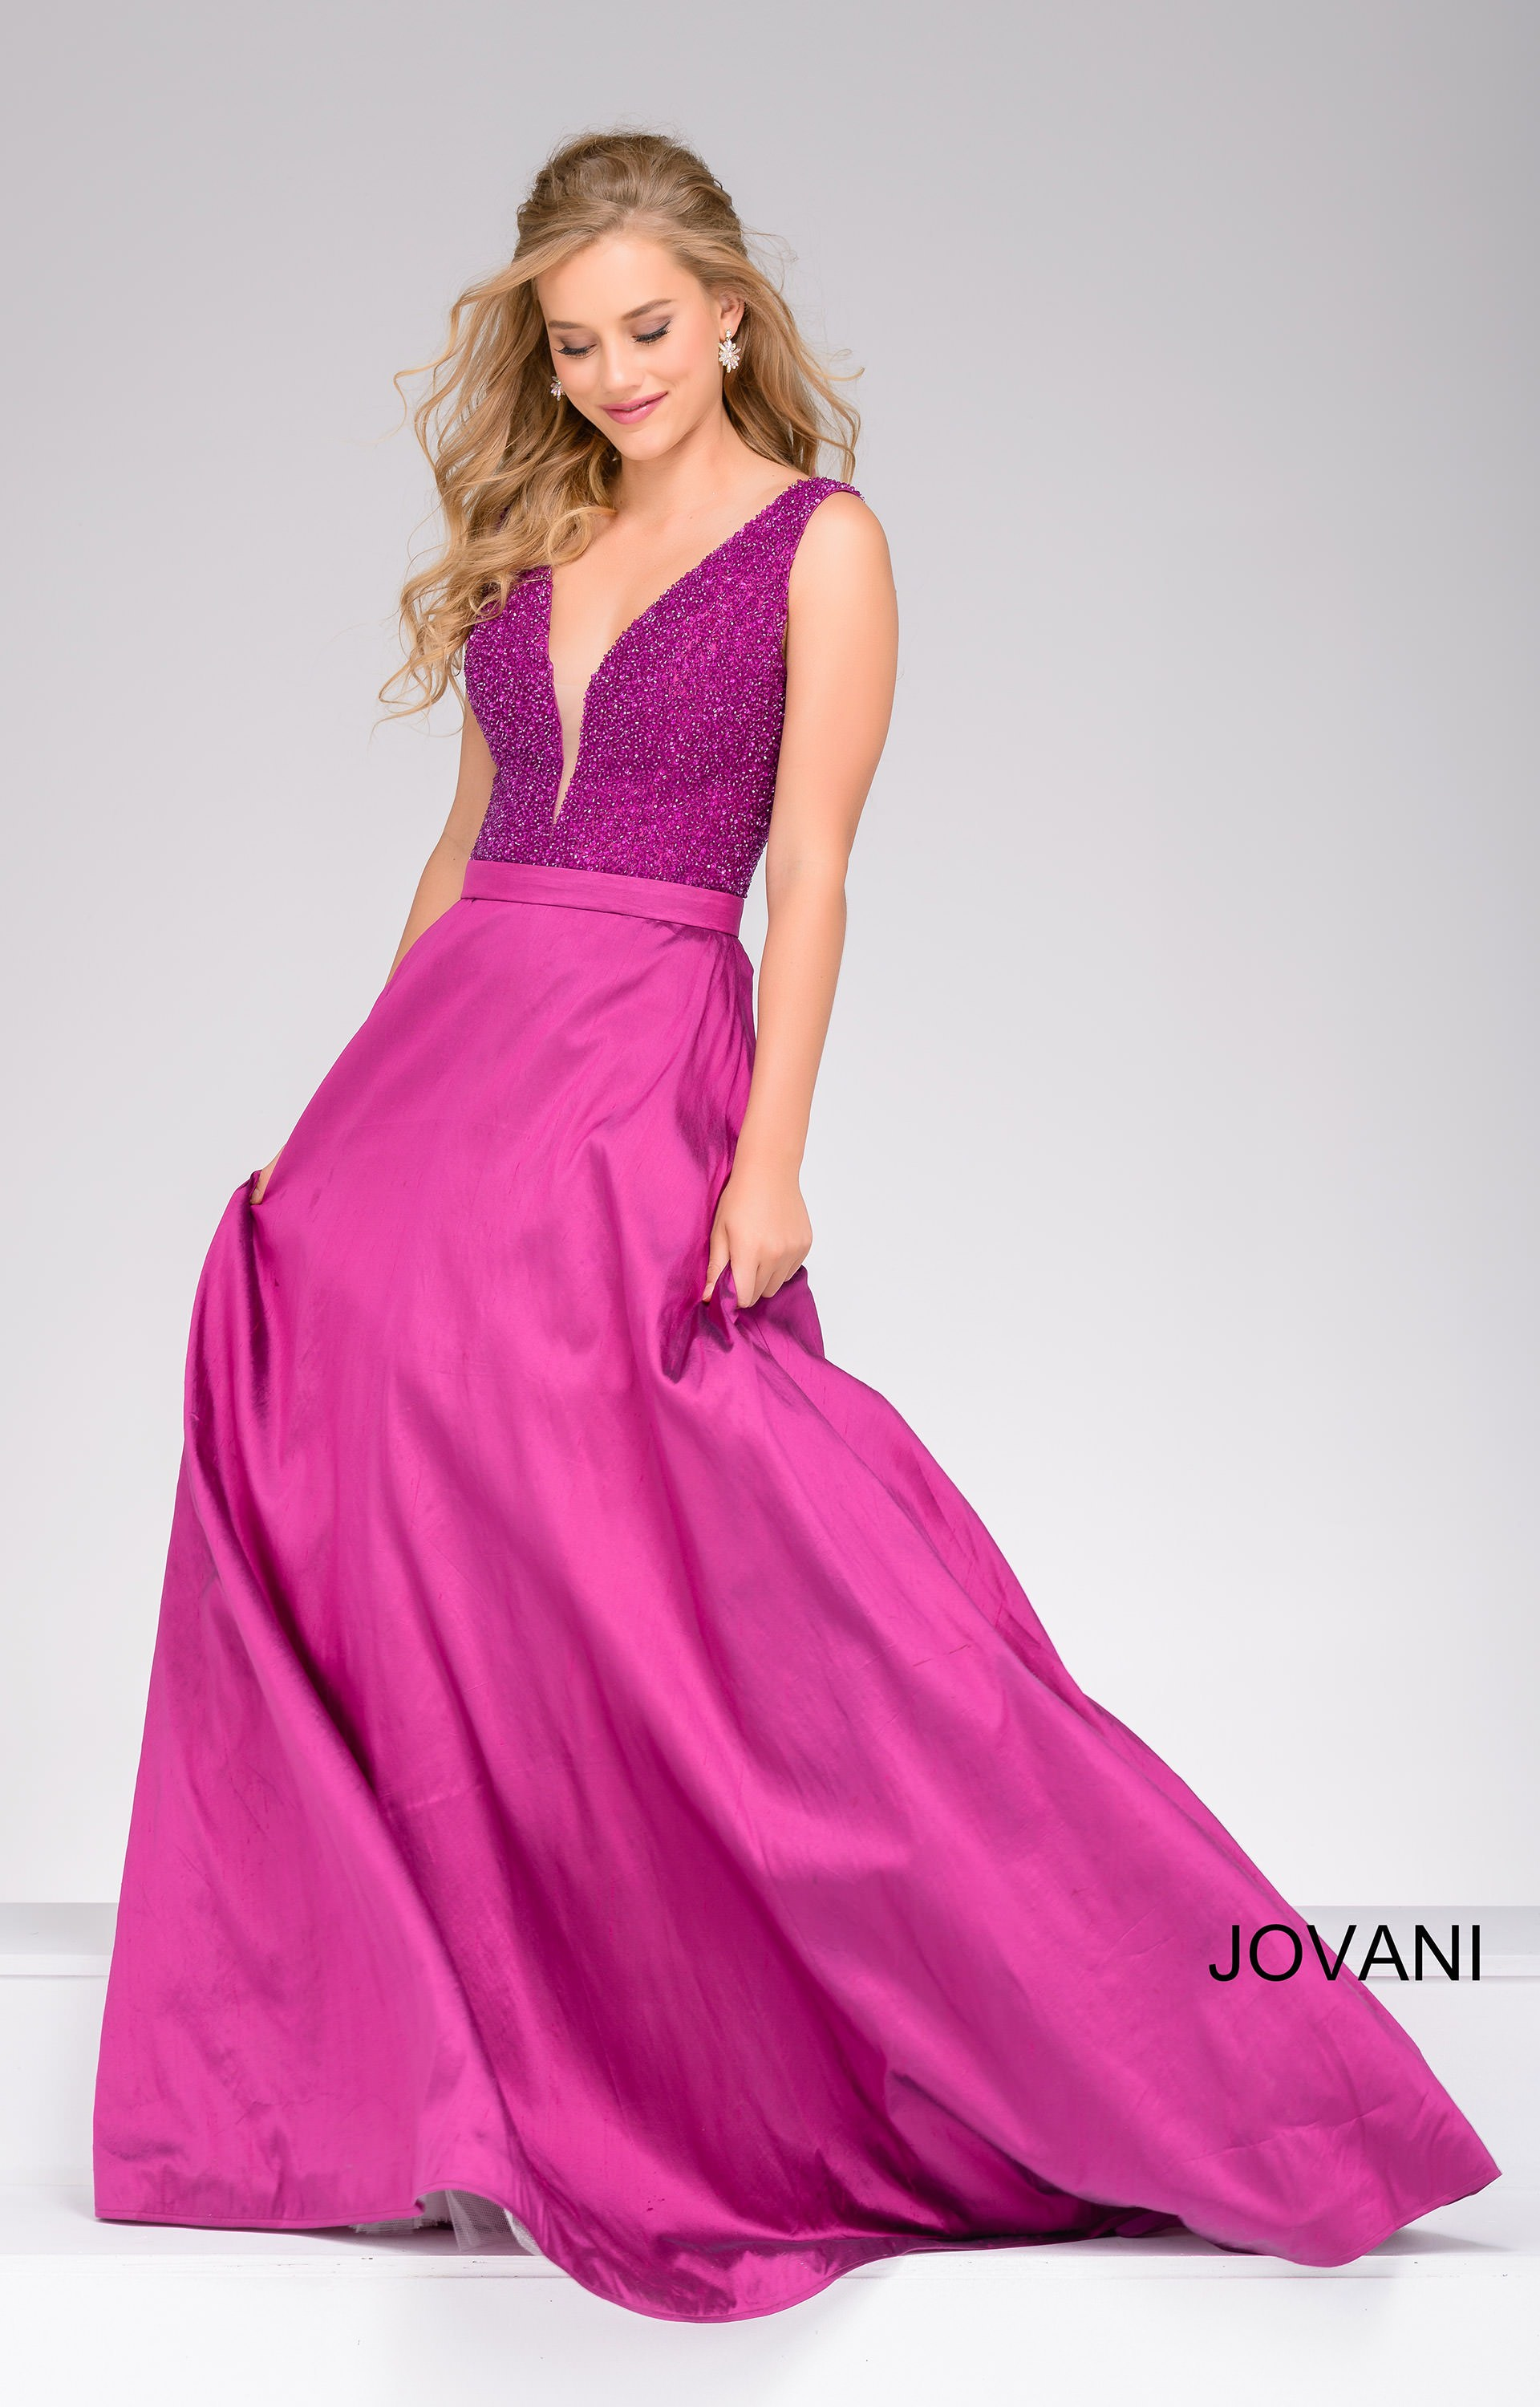 Jovani 40712 Beaded Bodice Deep V Neckline Ball Gown